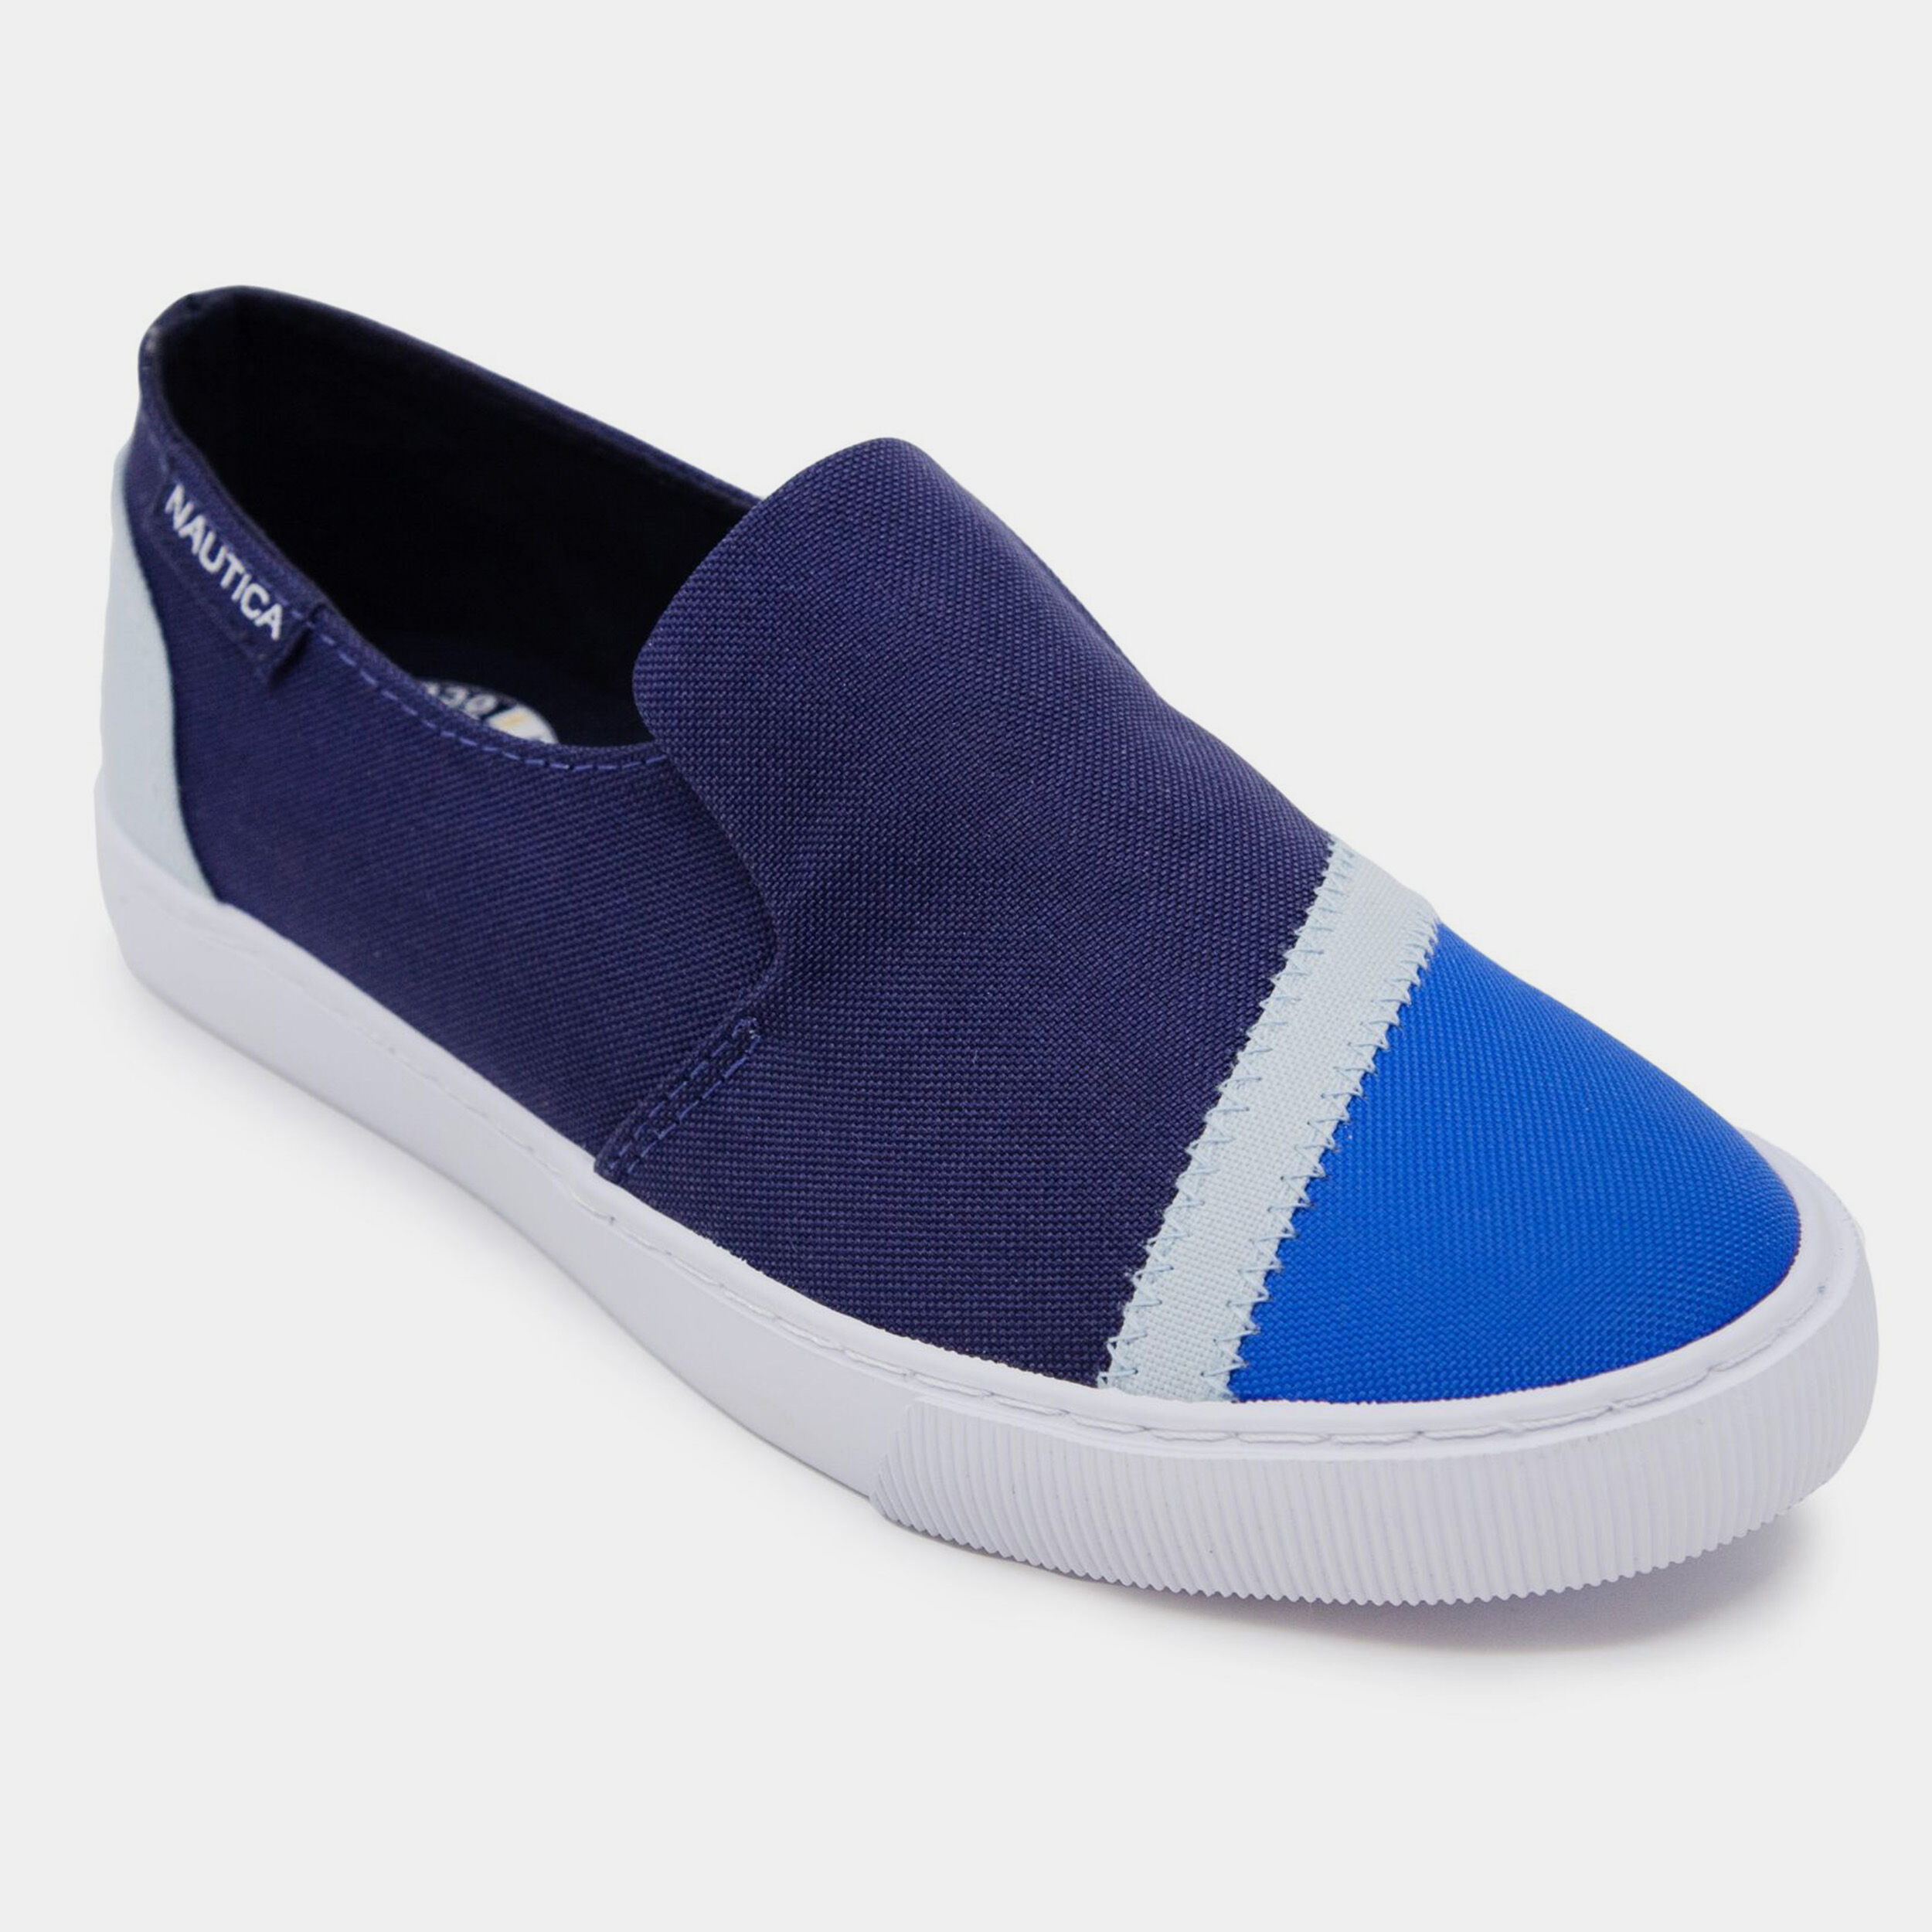 Womens Sneakers - Lace Up \u0026 Slip On